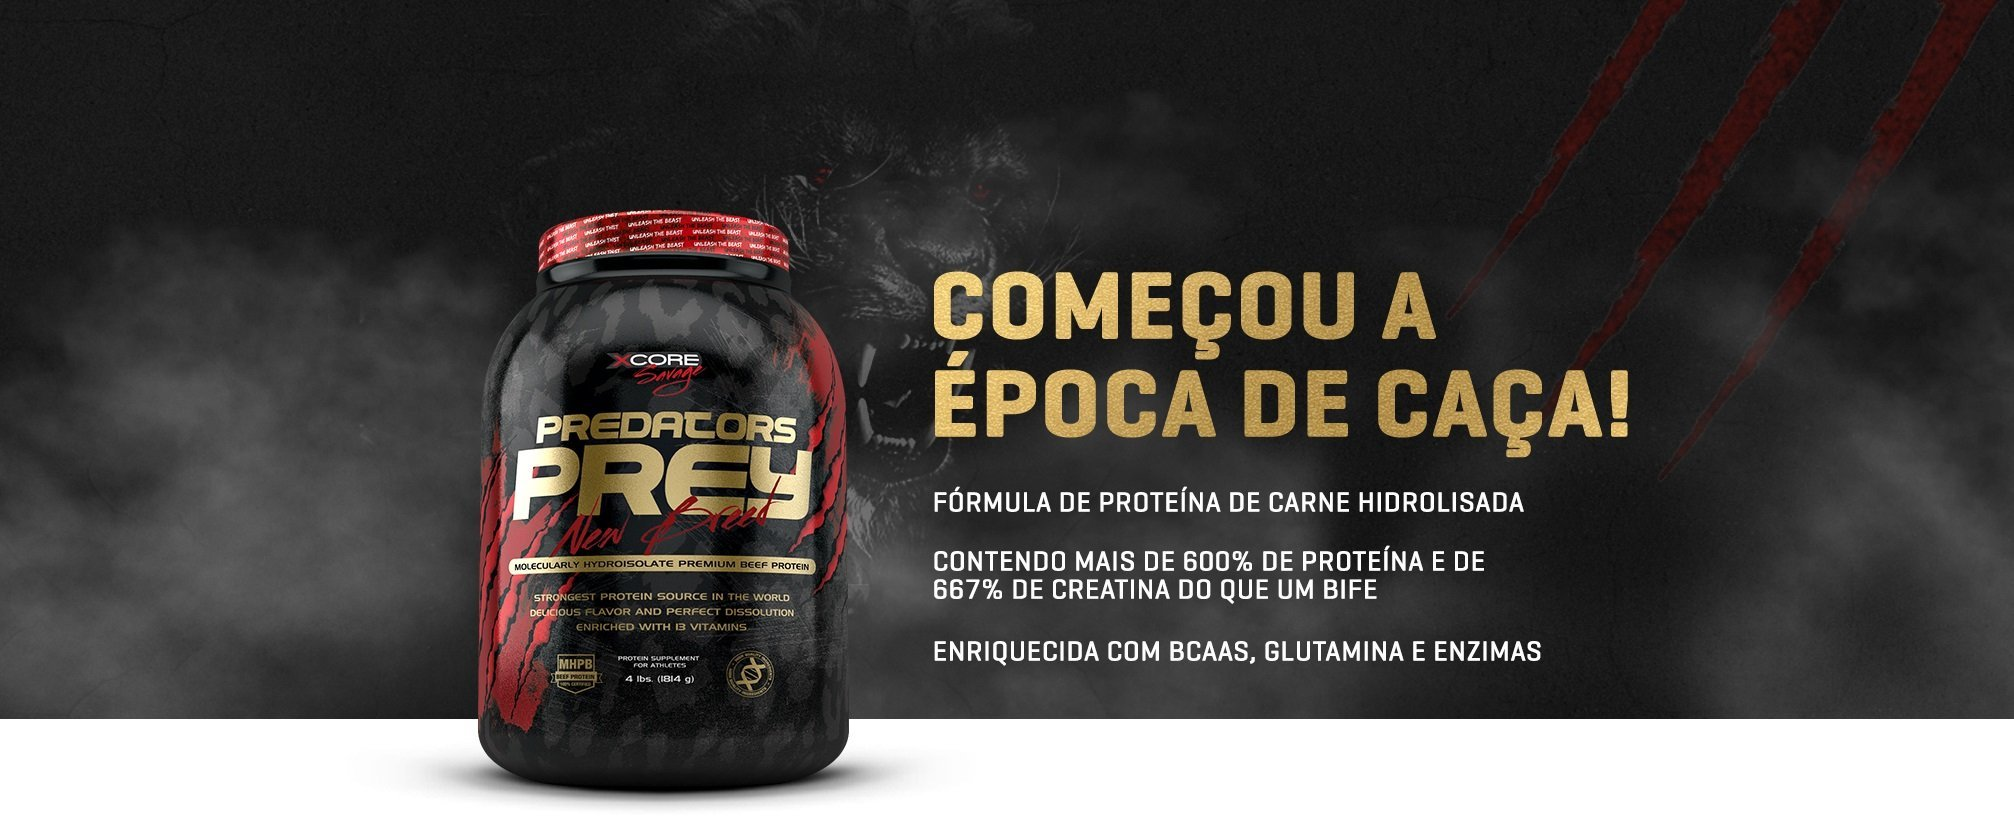 Predators Prey Xcore Nutrition